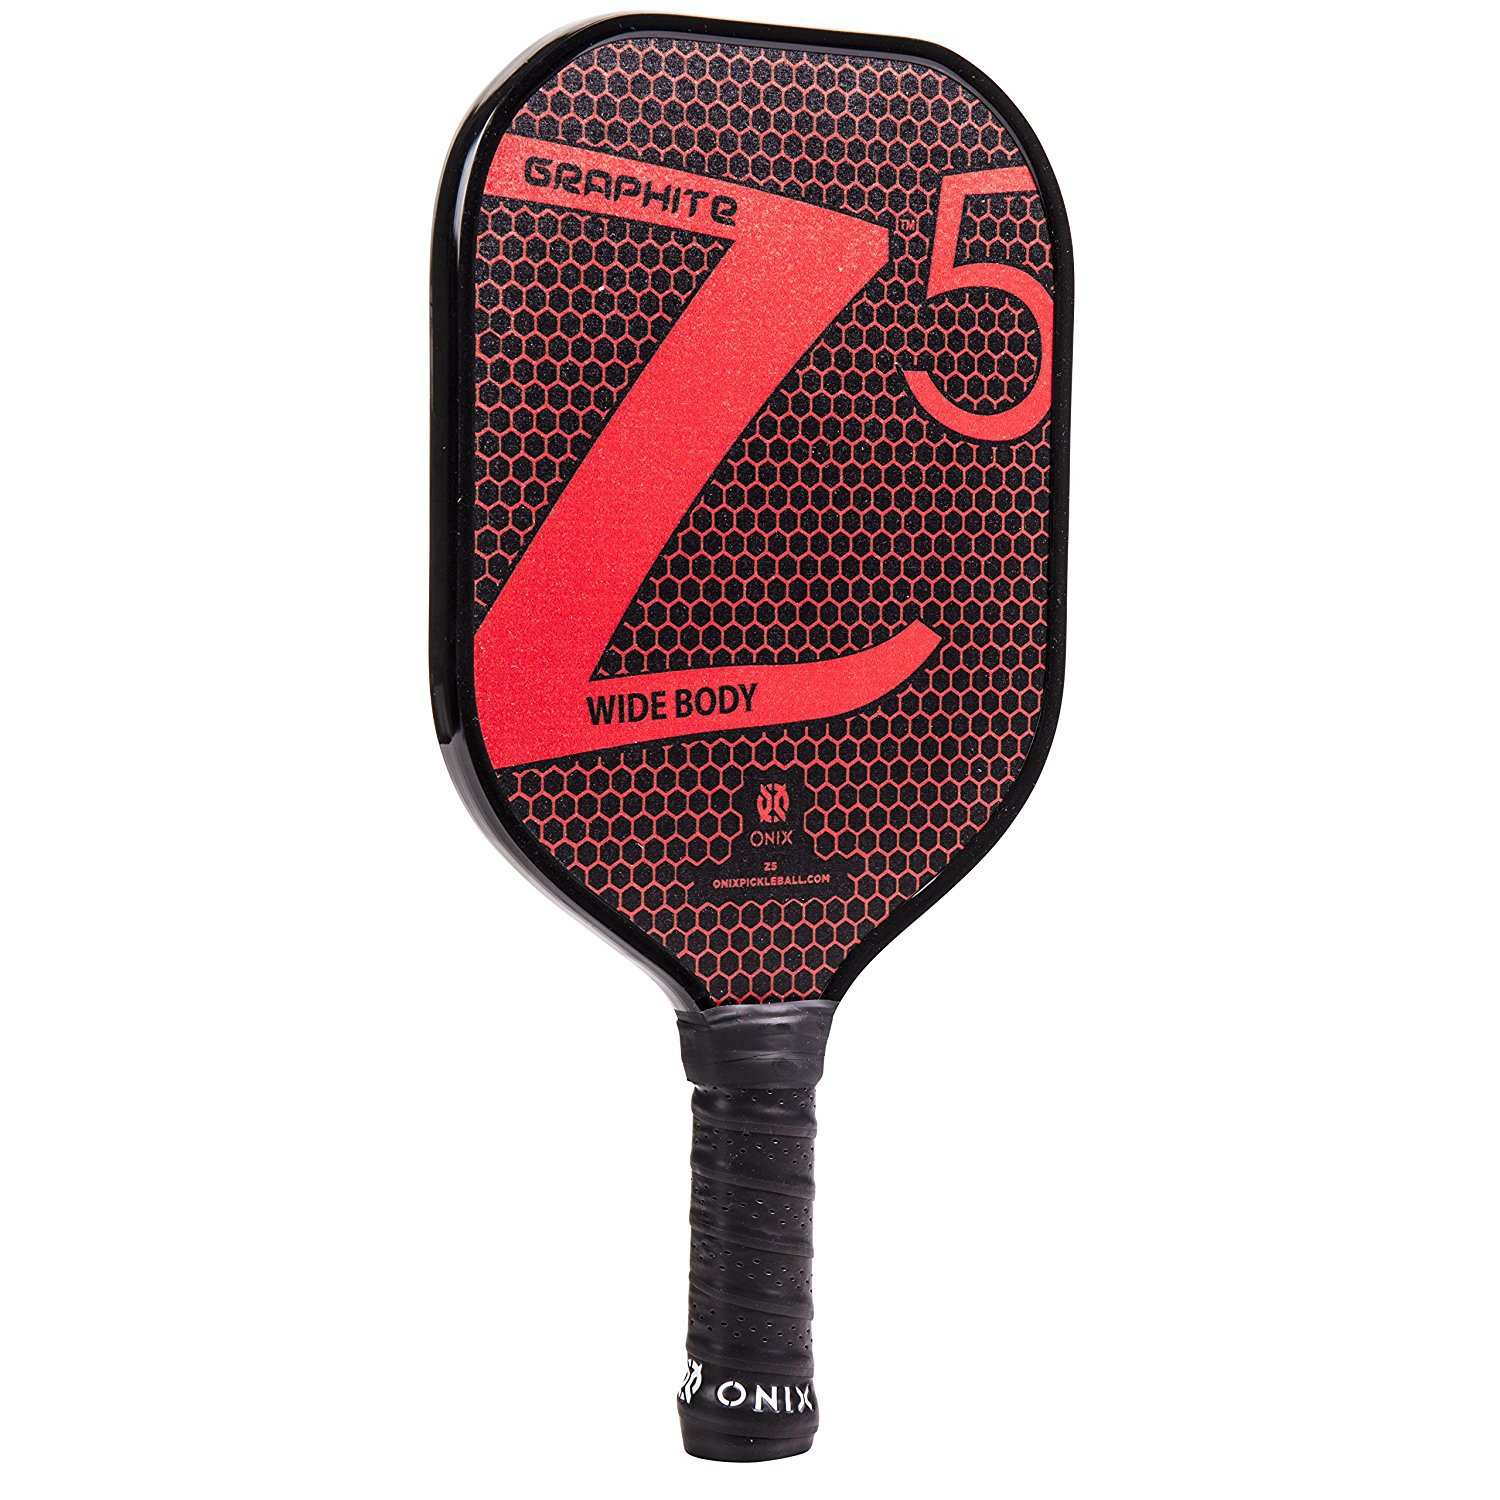 Onix Z5 Graphite Pickleball Paddle and Paddle Cover (Red) by Onix (Image #2)